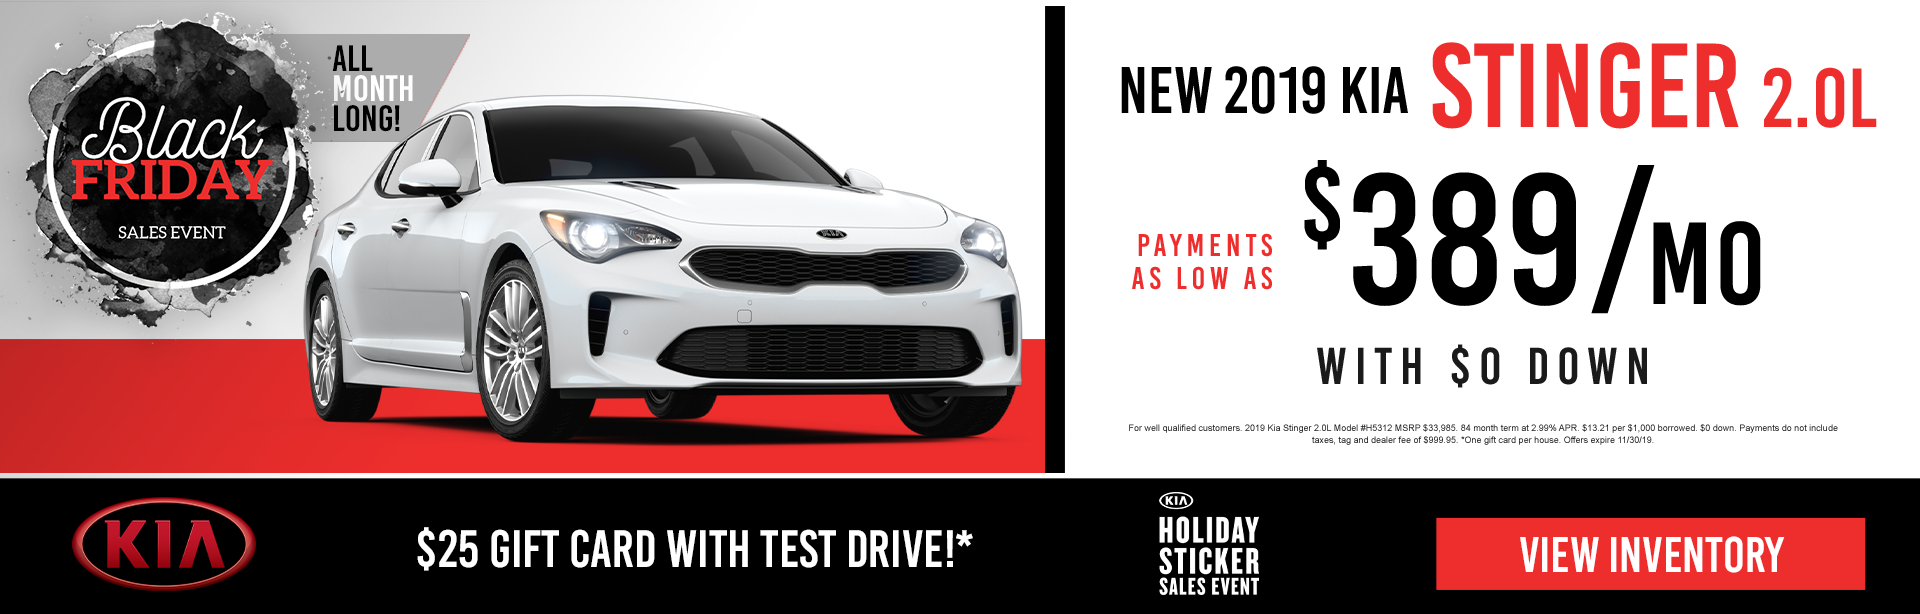 Black Friday Sales Event. All Month Long.  New 2019 Kia Stinger 2.0L. Payments as low at $389 a month. With $0 down.